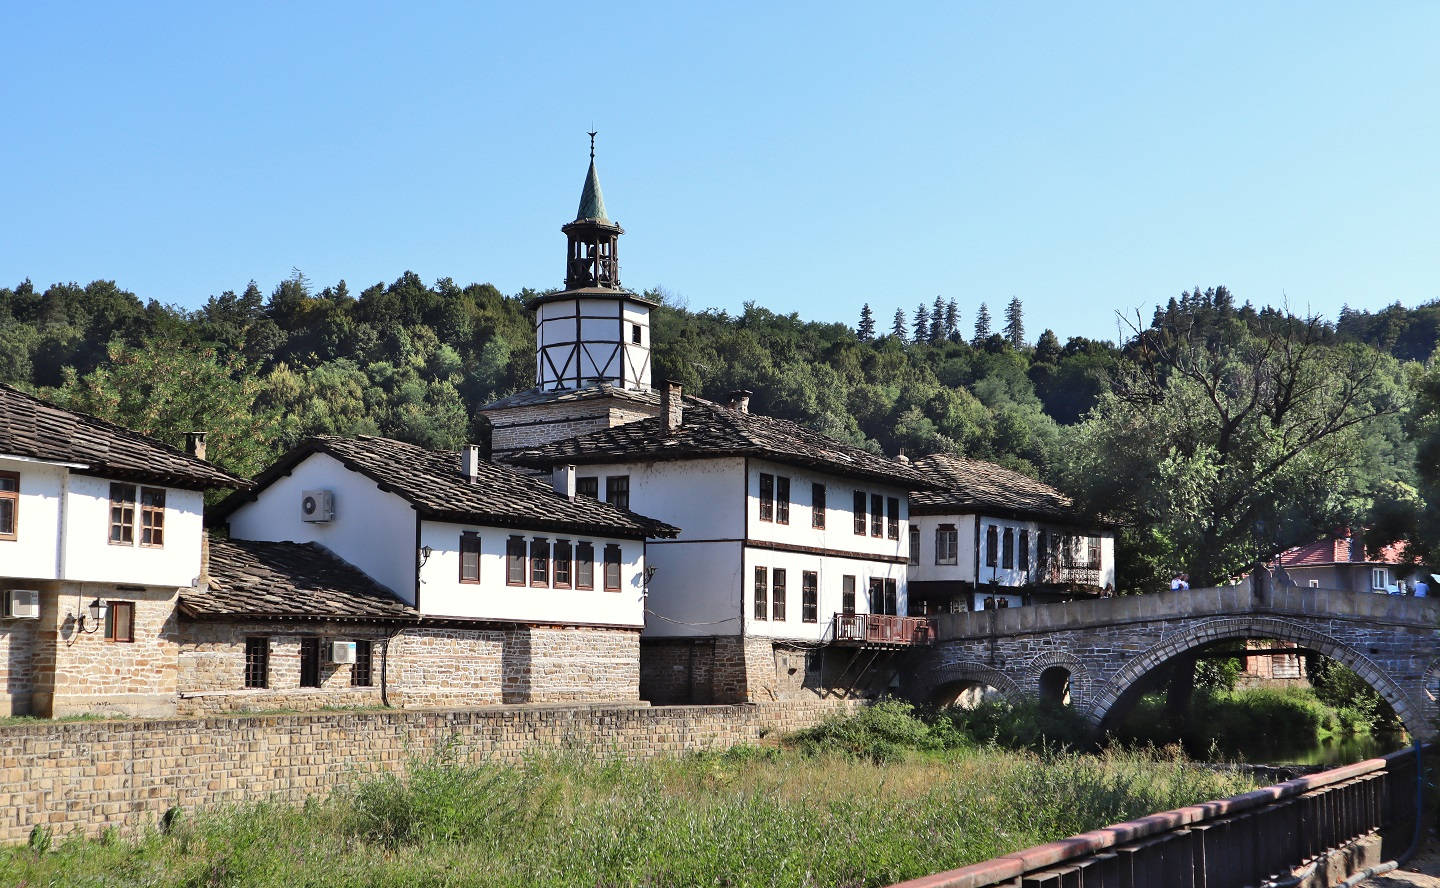 The clock tower and bridge in Tryavna